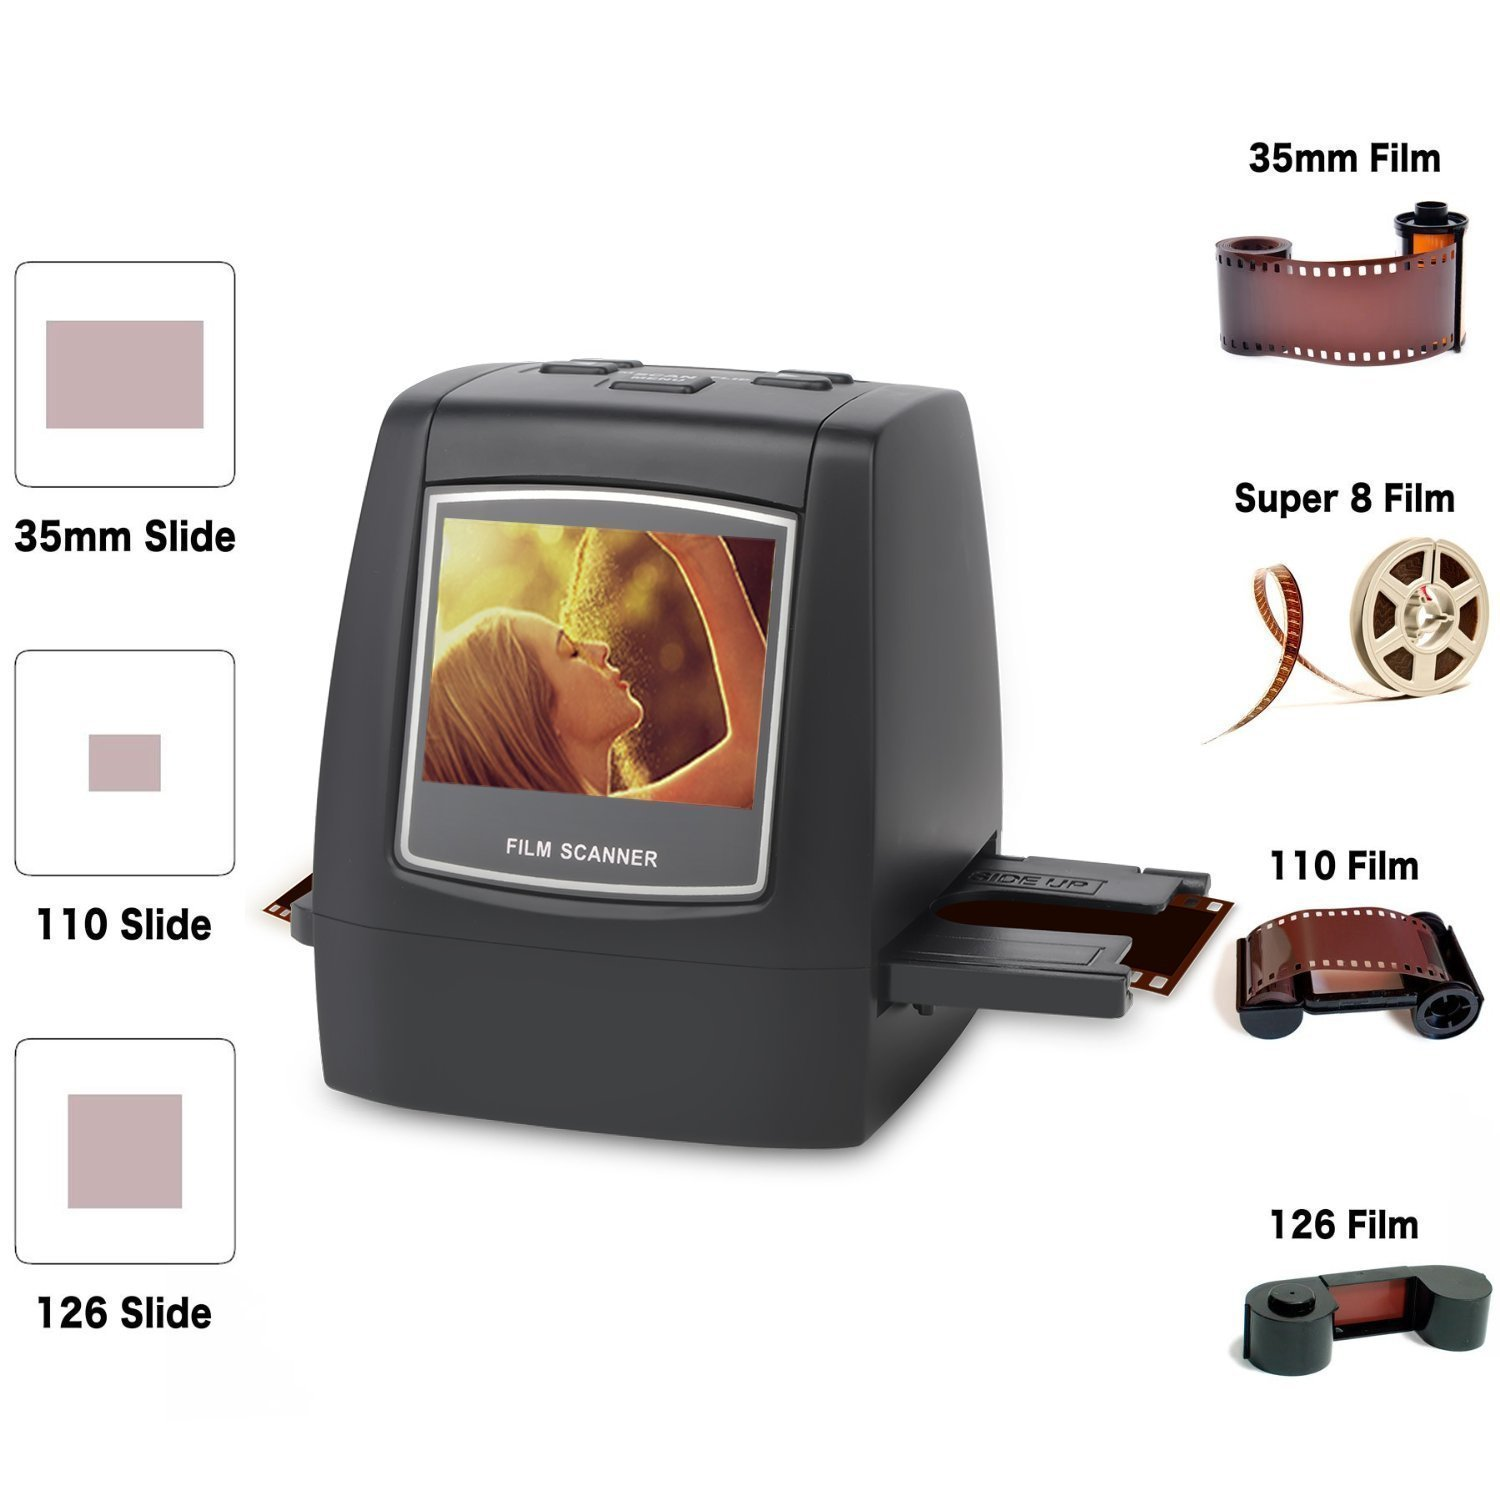 DIGITNOW Film scanner with 22MP Converts 126KPK/135/110/Super 8 Films, Slides, Negatives into Digital Photos,2.4'' LCD Screen, Impressive 128MB Built-In Memory